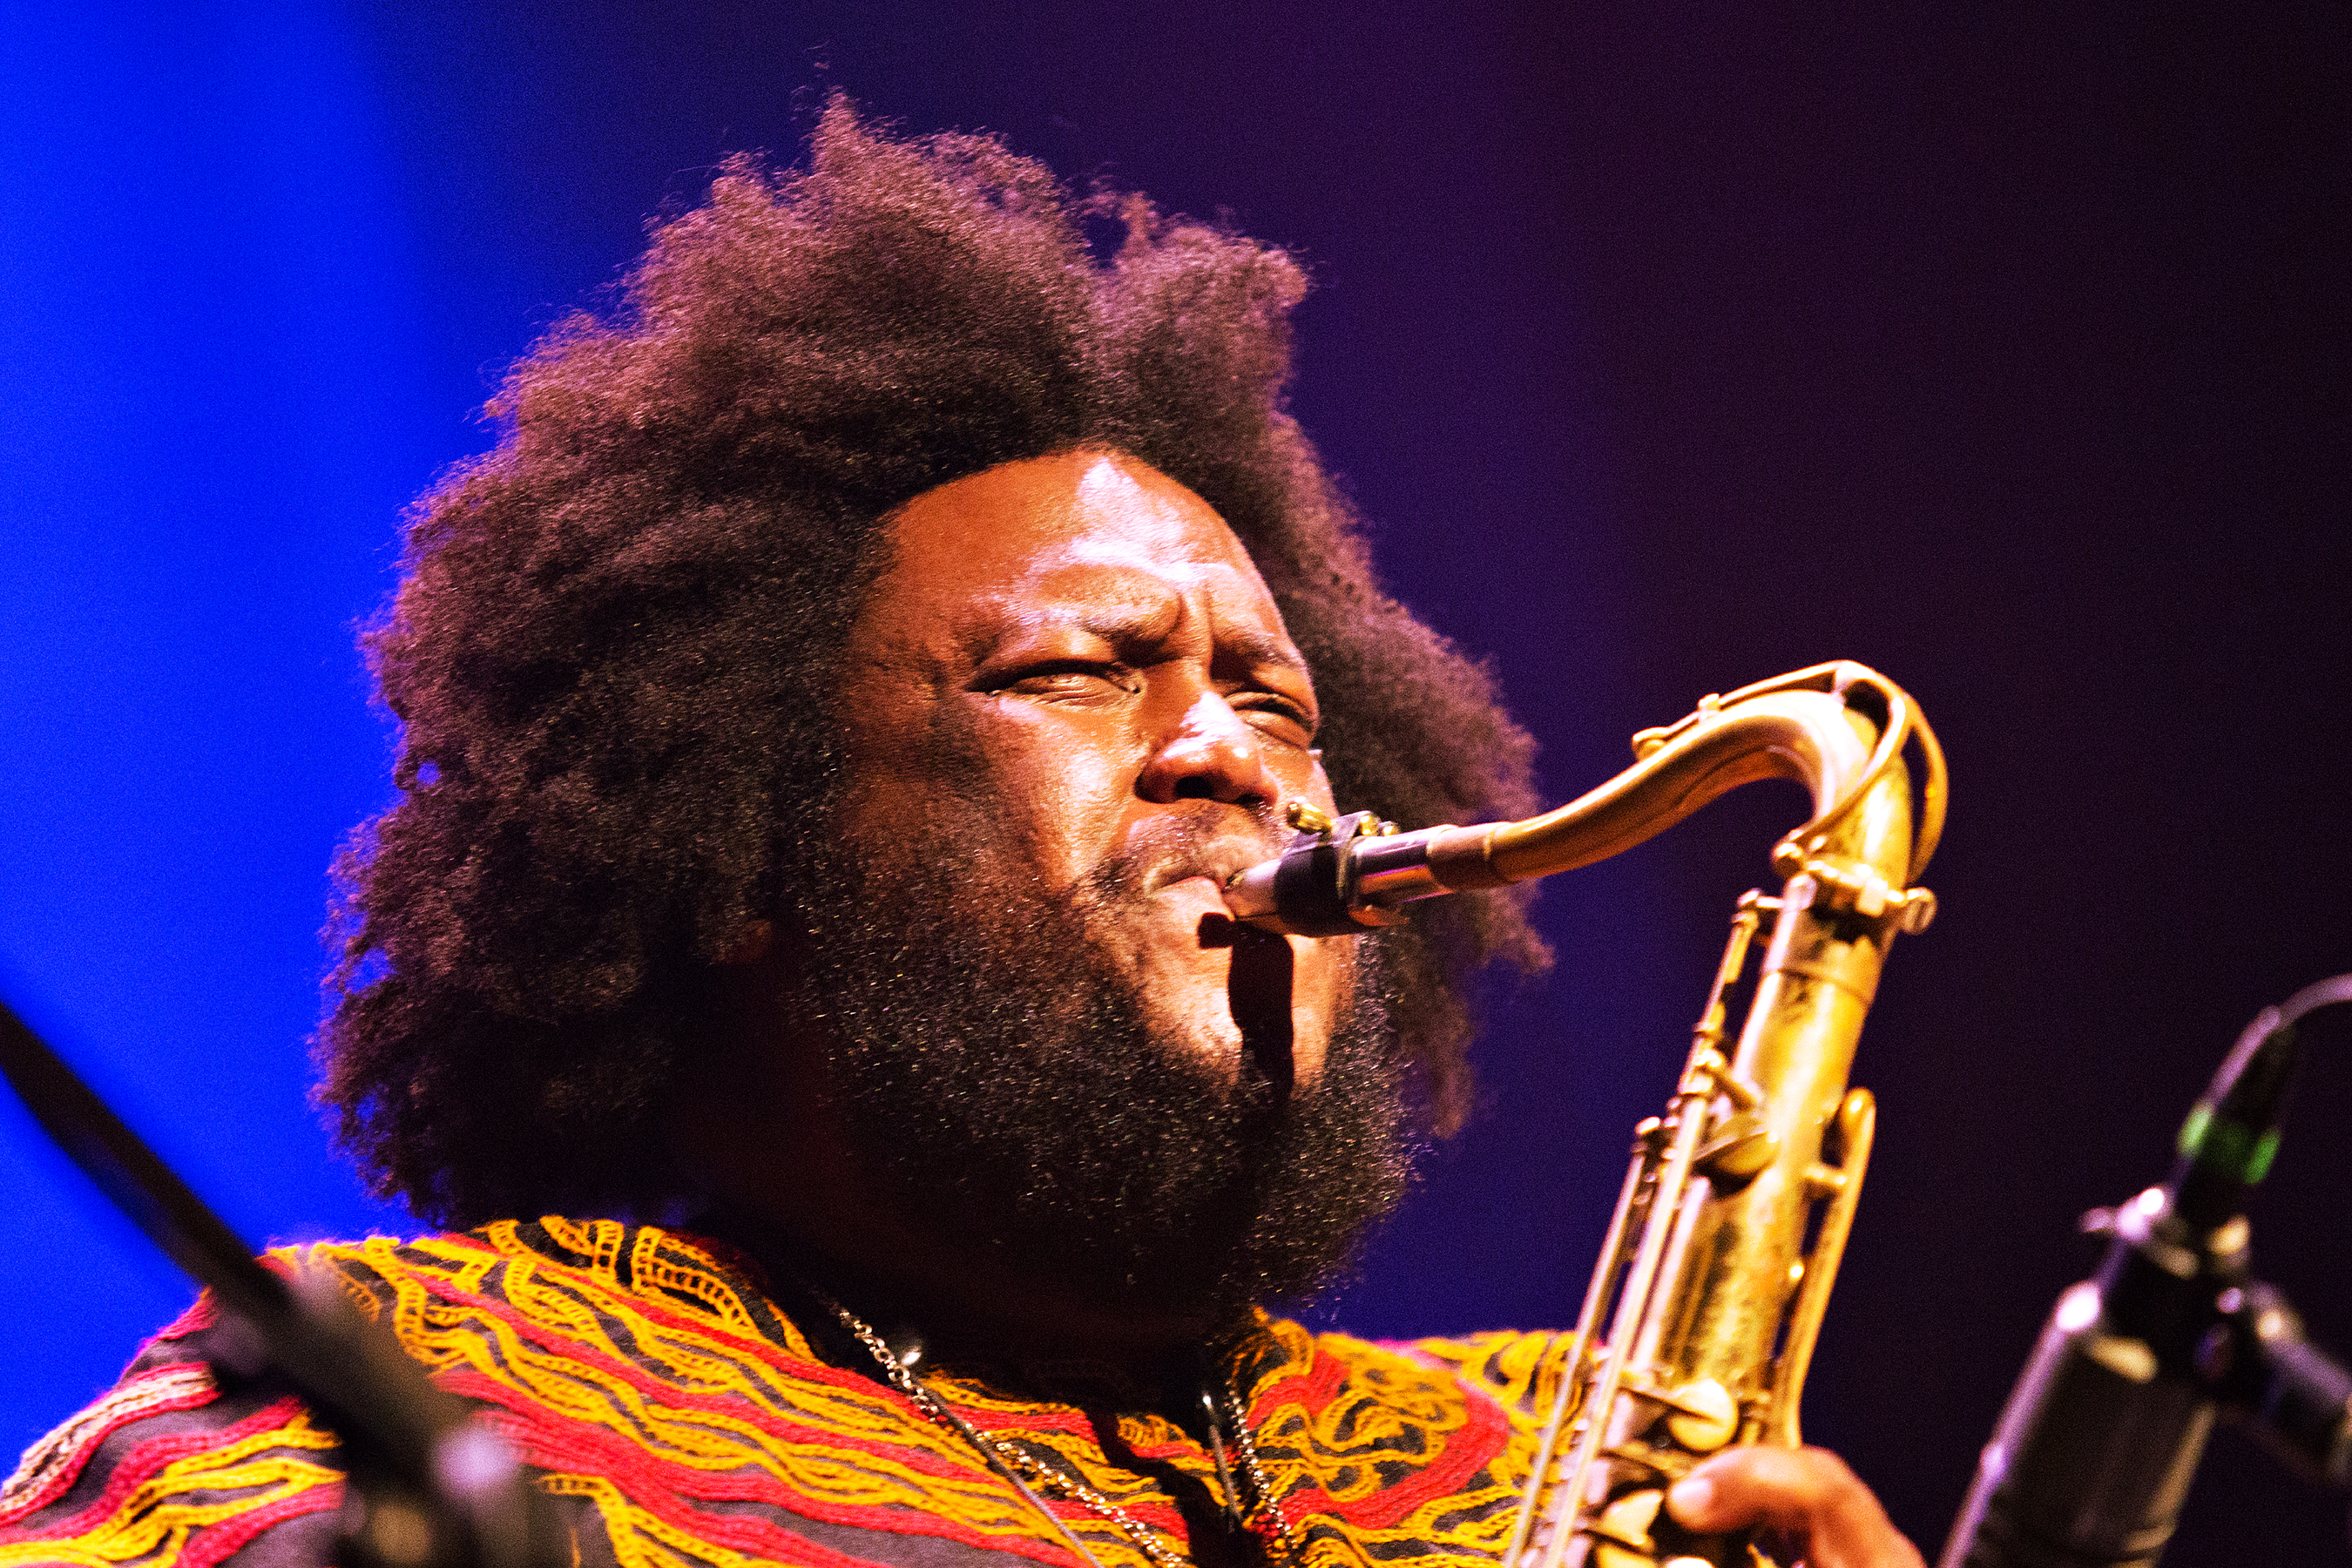 Kamasi Washington with special guest DJ Cutler *SOLD OUT*